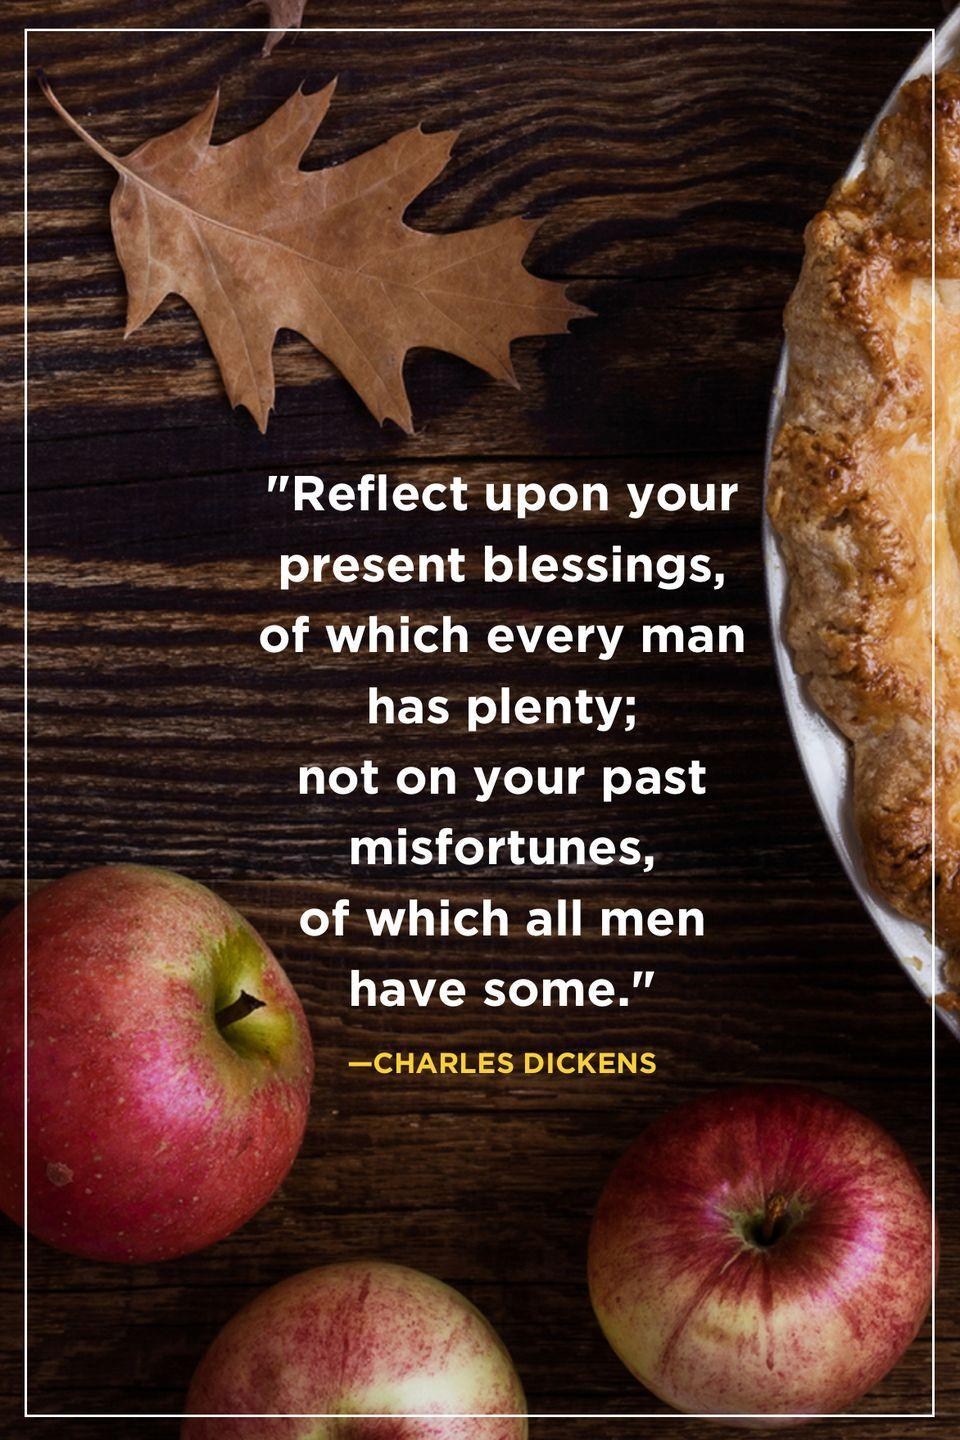 """<p>""""Reflect upon your present blessings, of which every man has plenty; not on your past misfortunes, of which all men have some.""""</p>"""